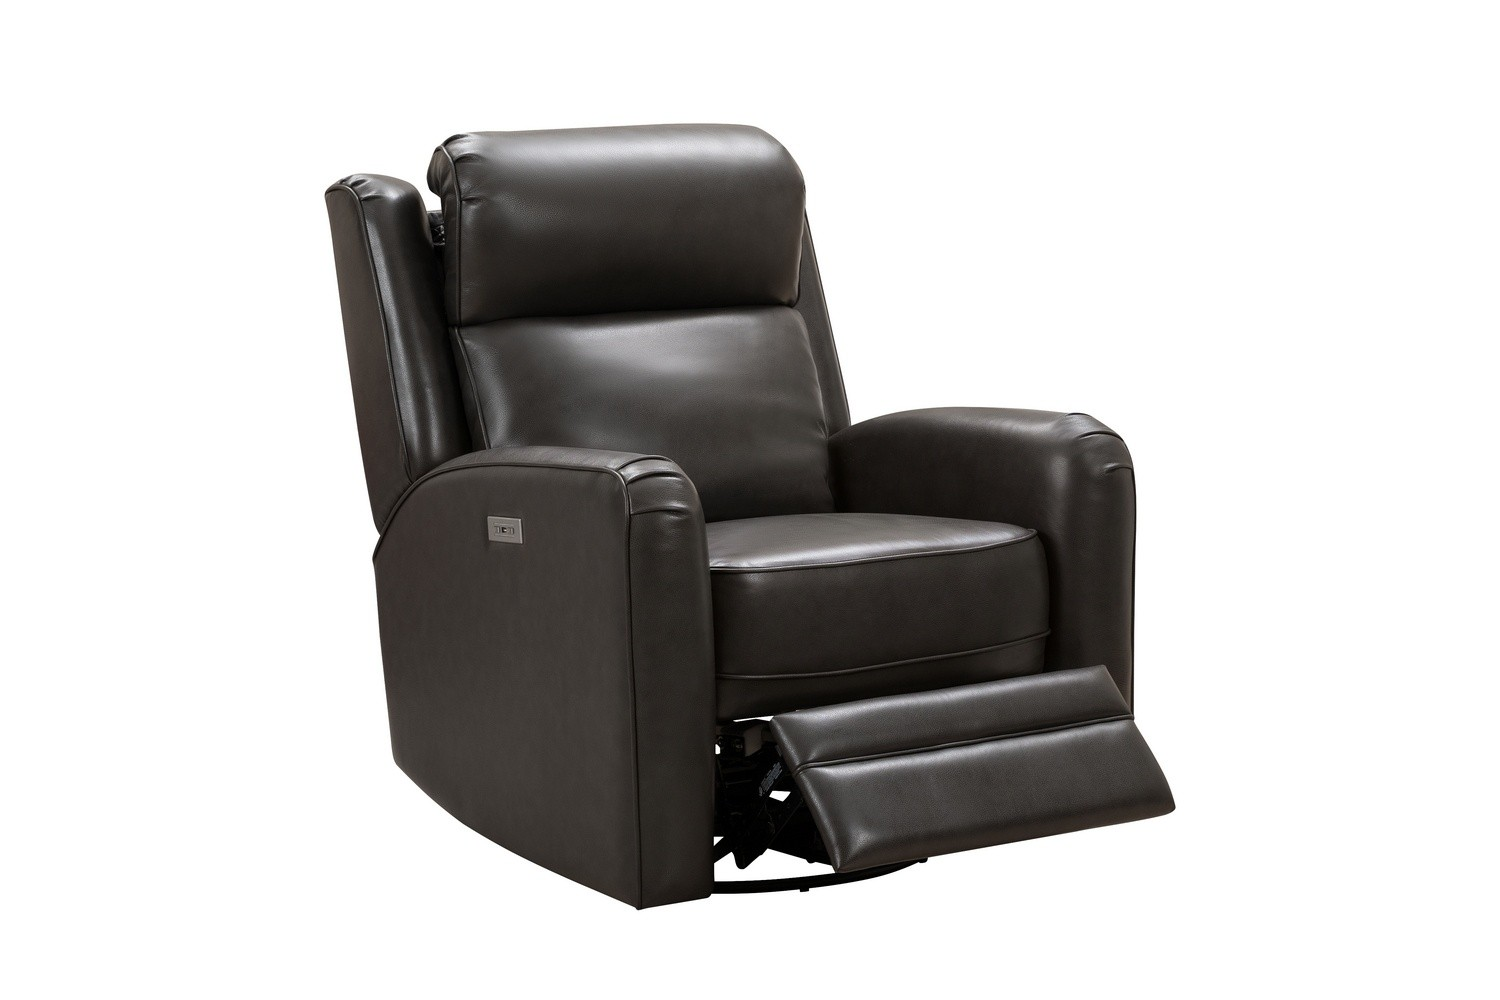 Barcalounger Kennedy Big and Tall Power Swivel Recliner Chair with Power Head Rest - Matteo Smokey Gray/Leather Match